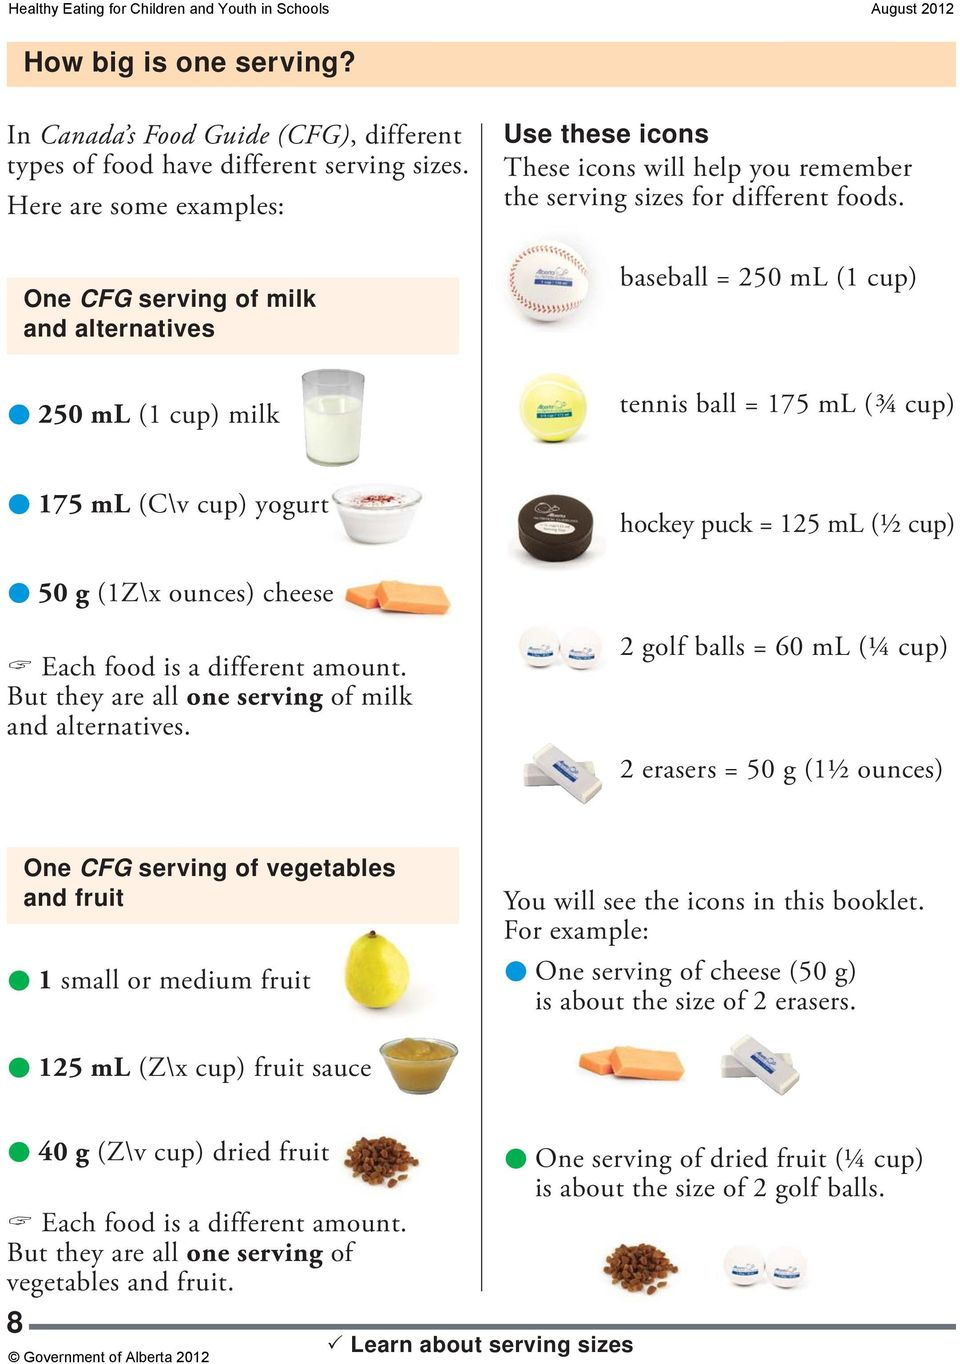 One CFG serving of milk and alternatives baseball = 250 ml (1 cup) 250 ml (1 cup) milk tennis ball = 175 ml (¾ cup) 175 ml (C\v cup) yogurt hockey puck = 125 ml (½ cup) 50 g (1Z\x ounces) cheese Each